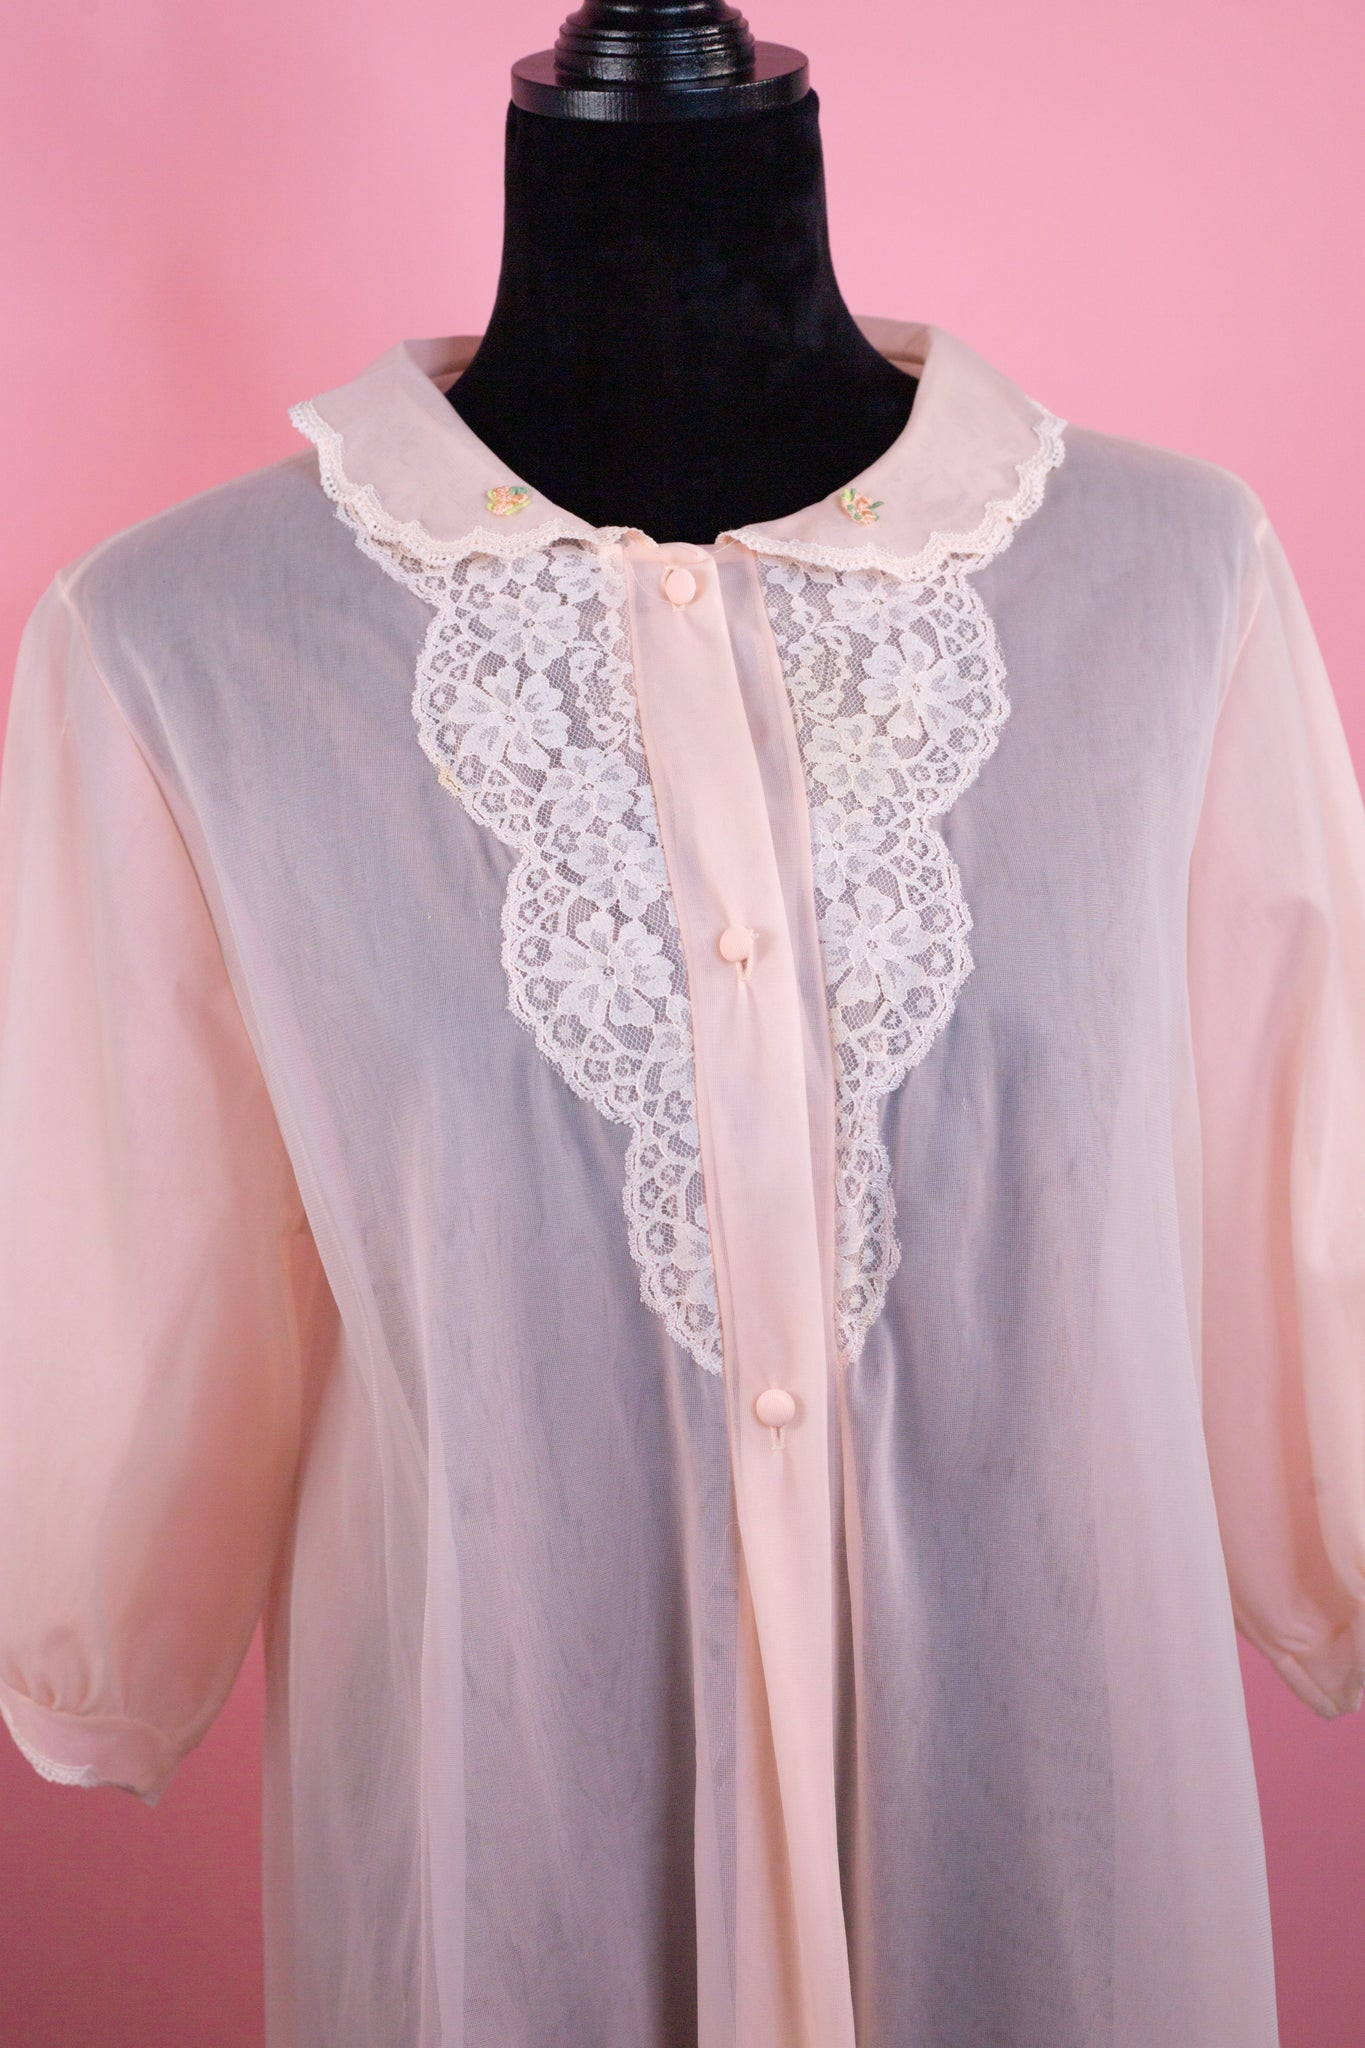 Vintage Lorraine Light Pink Sheer Lace Nightgown - Gypsie Souls